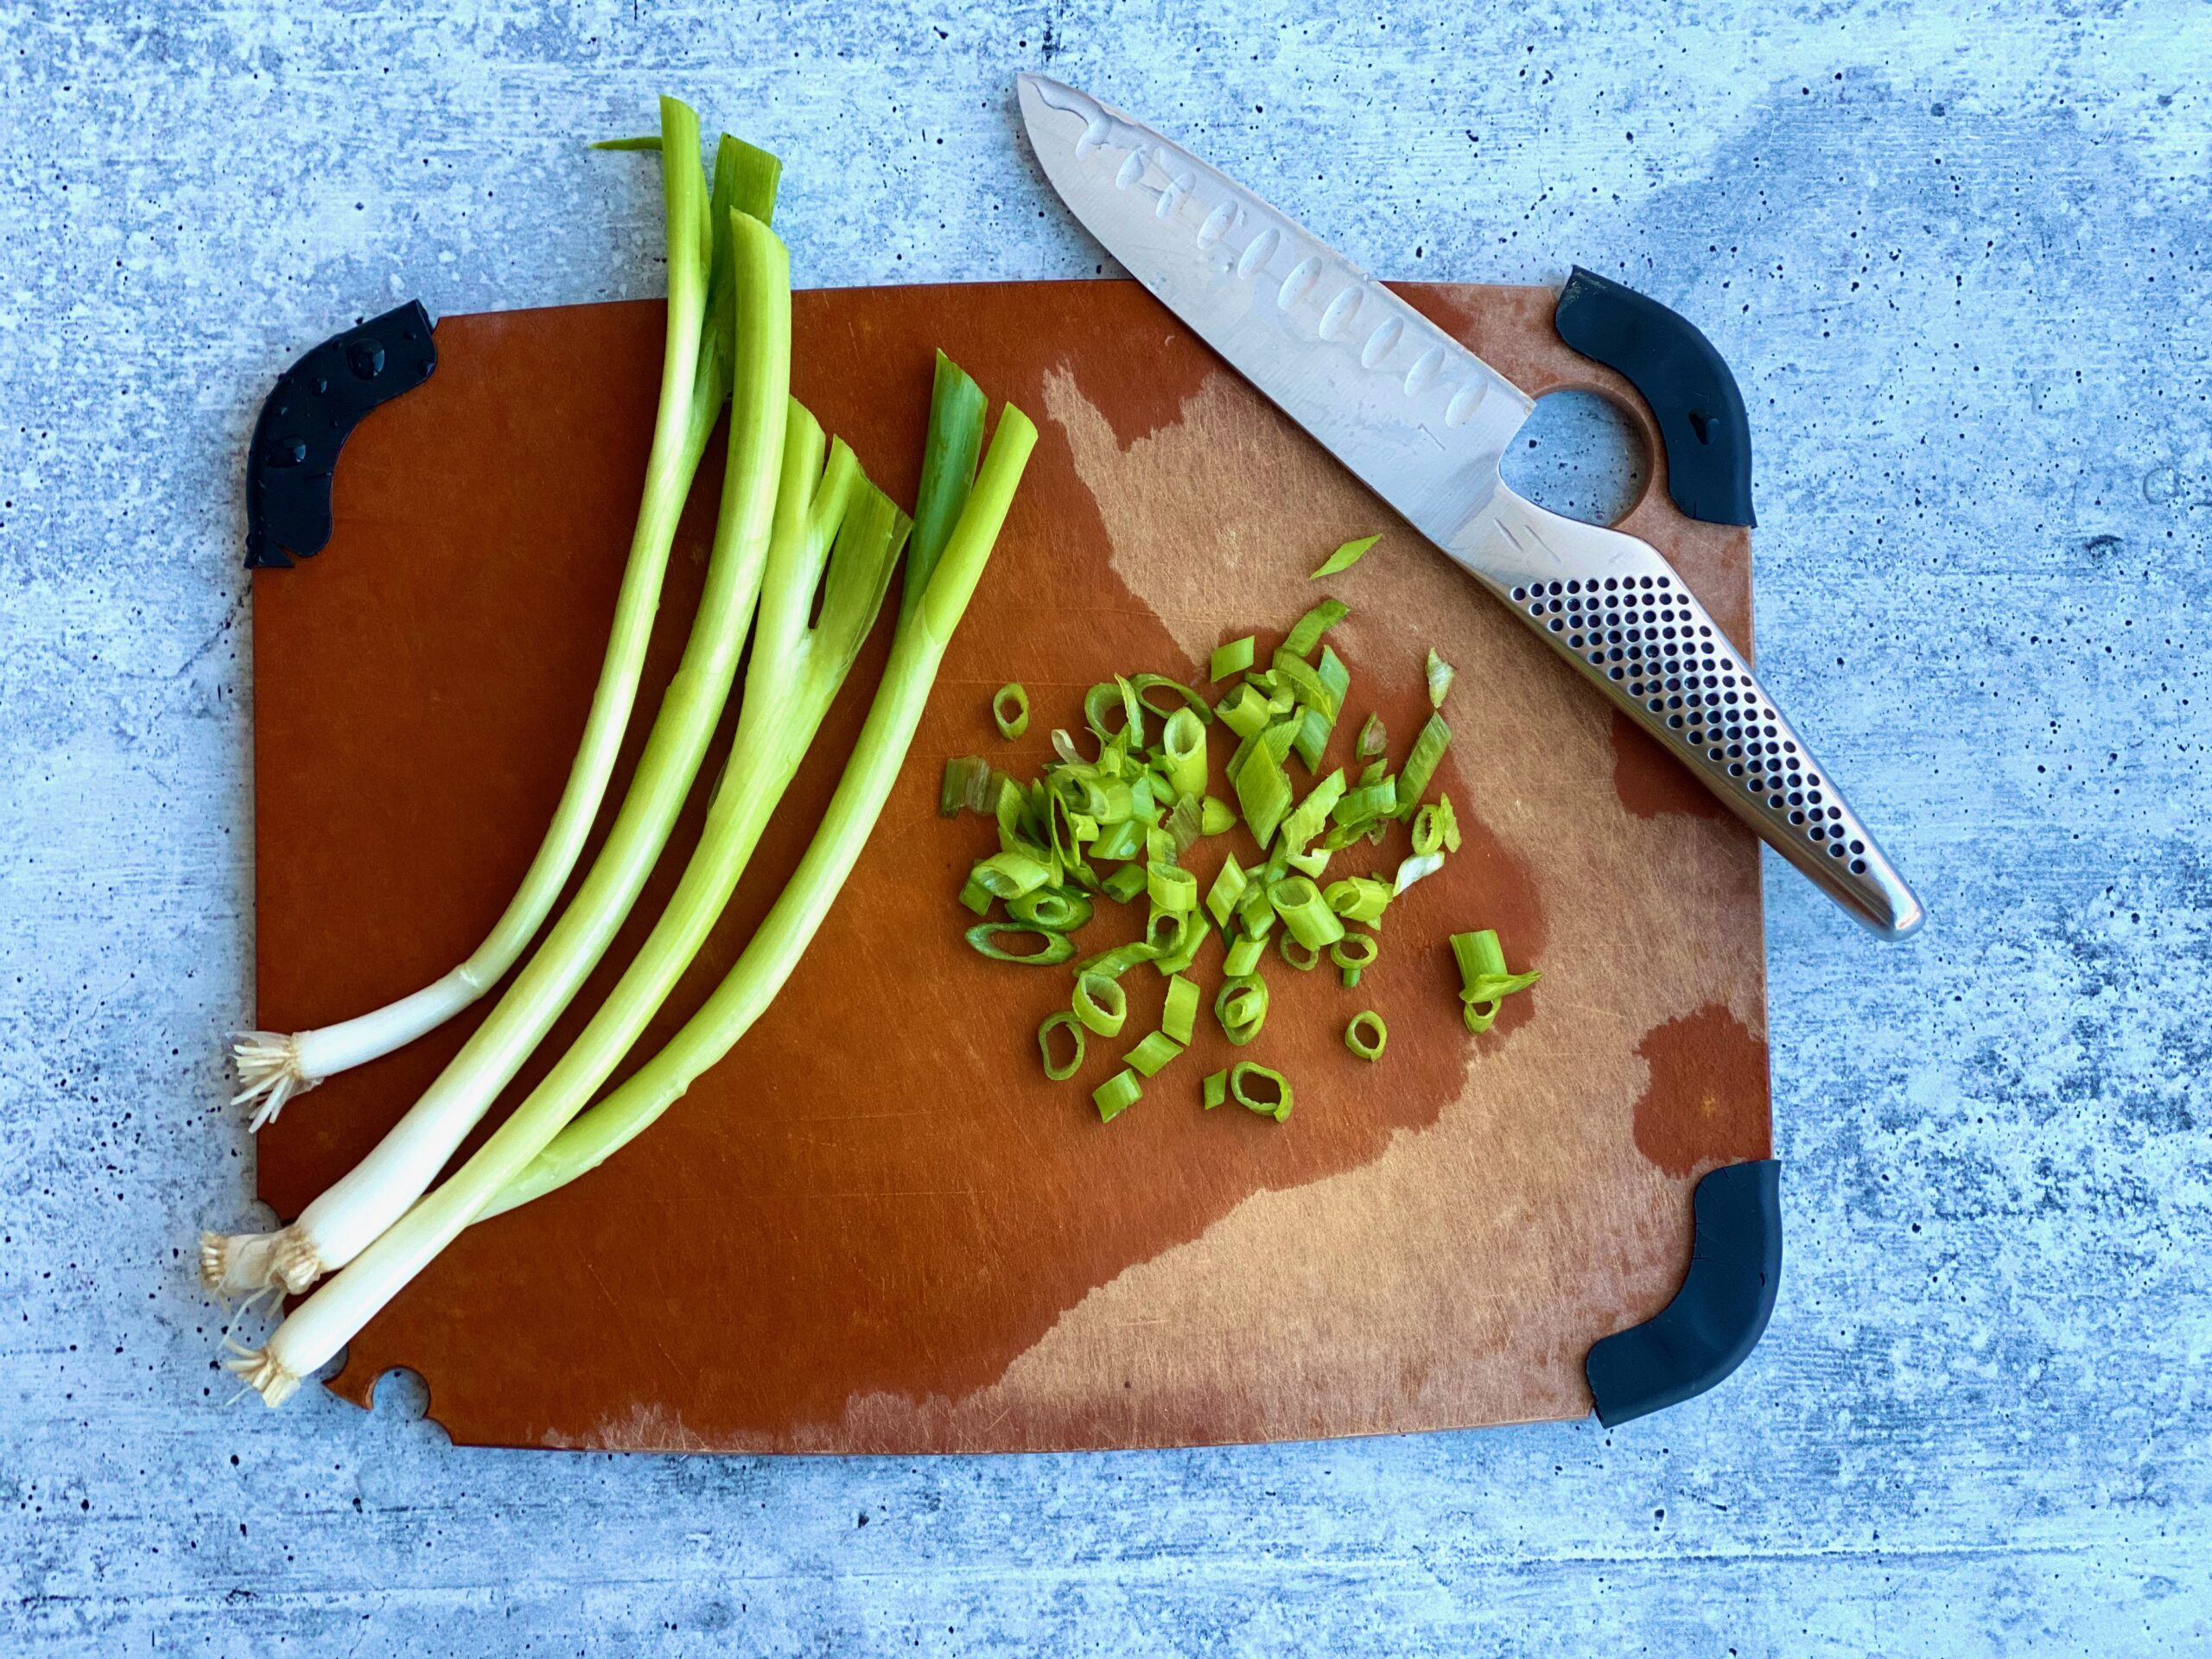 An image of scallions half chopped on a cutting board with a knife